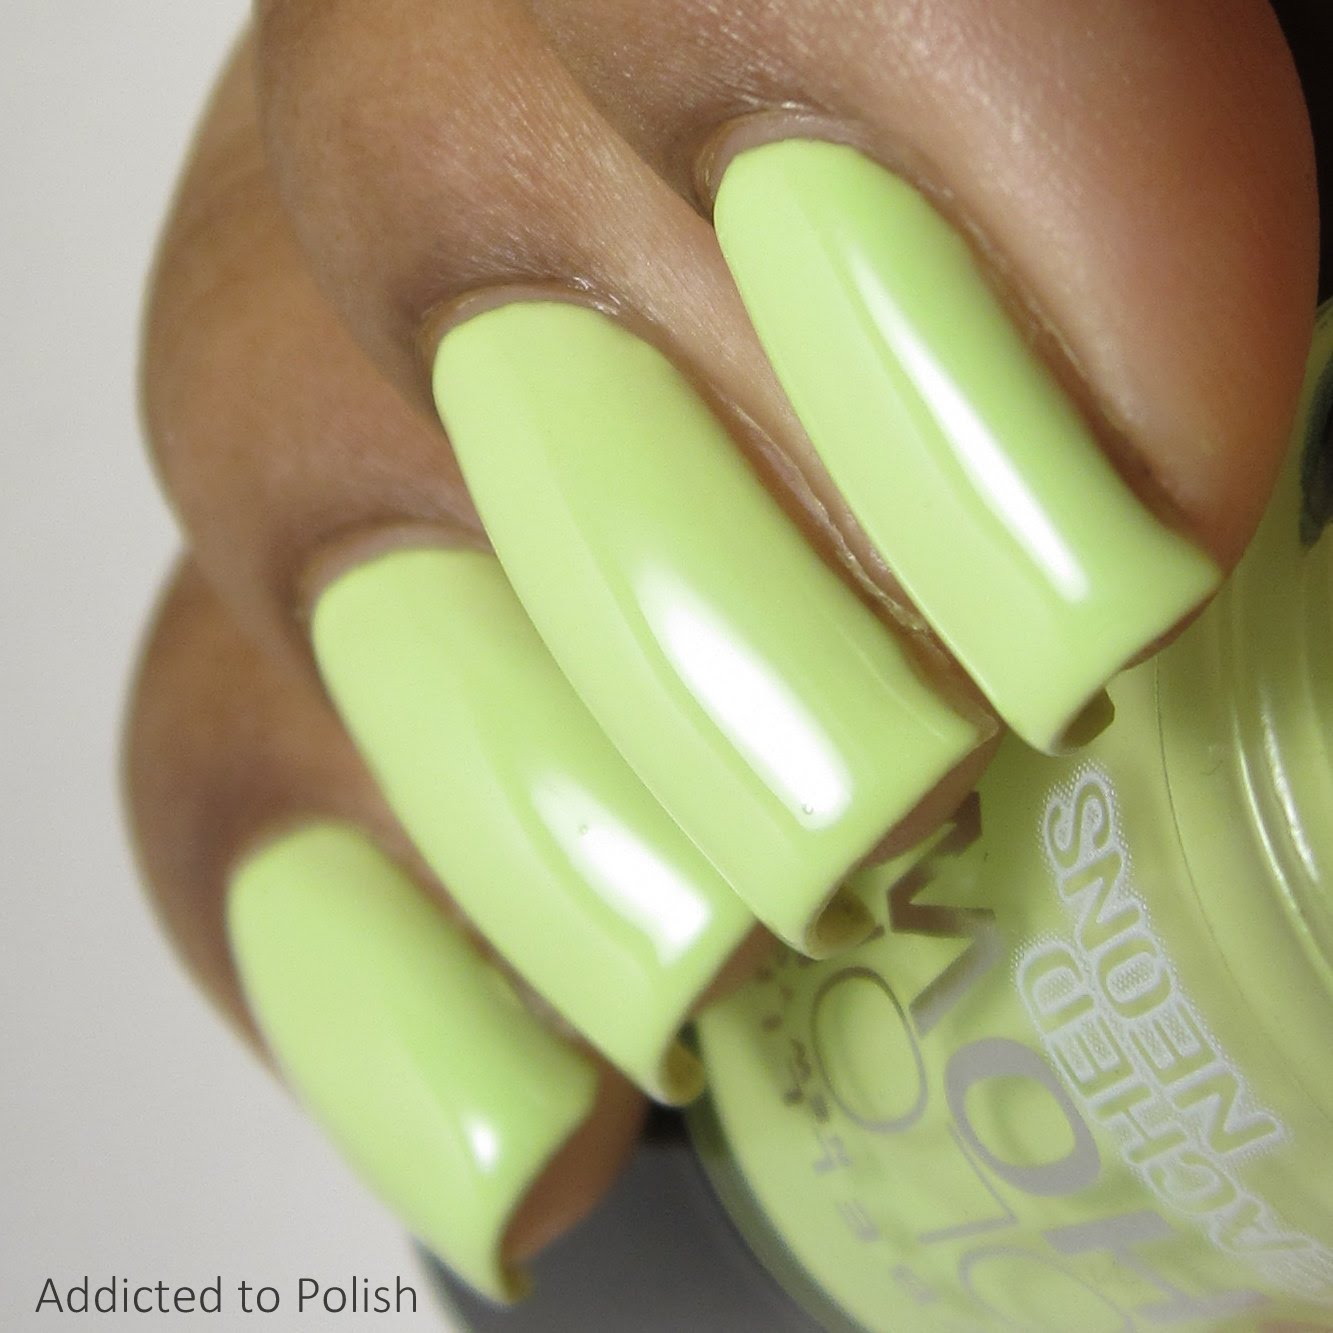 Maybelline-Lime-Accent-Bleached-Neons